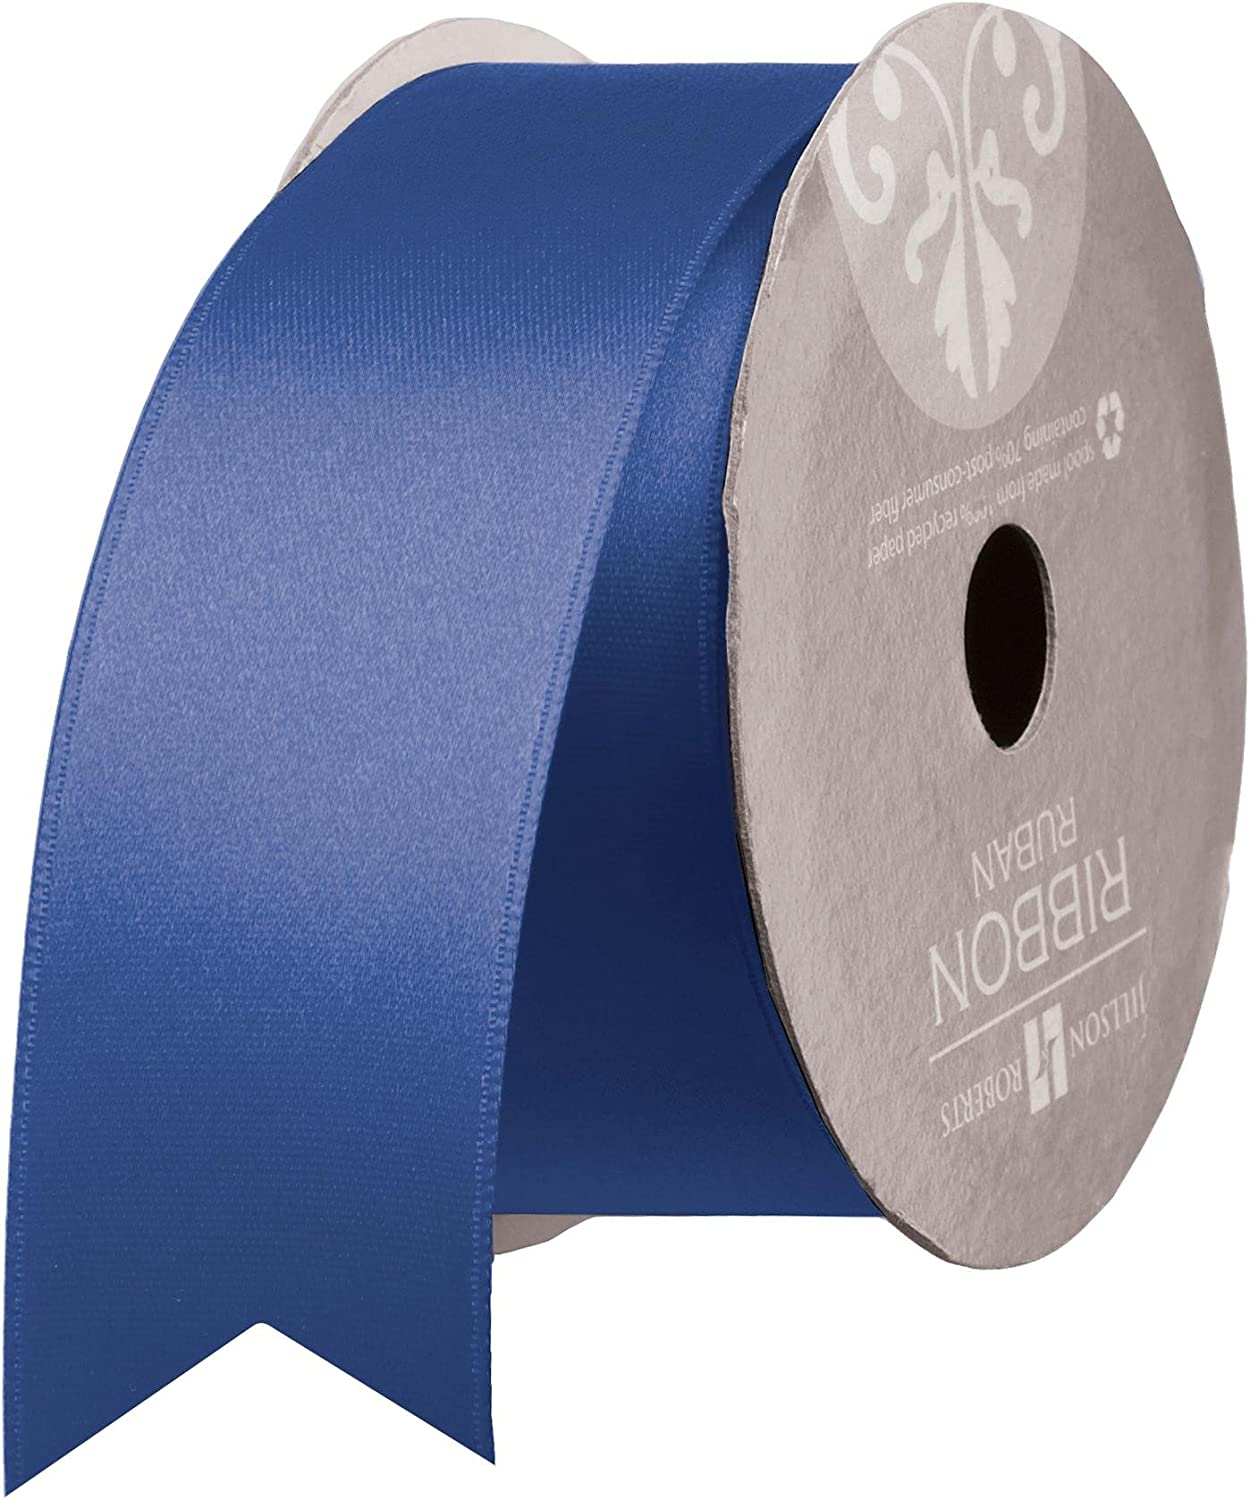 Jillson Roberts Bulk Spool 1.5  x 50 Yards DoubleFaced Satin Ribbon Available in 7 colors, Royal bluee